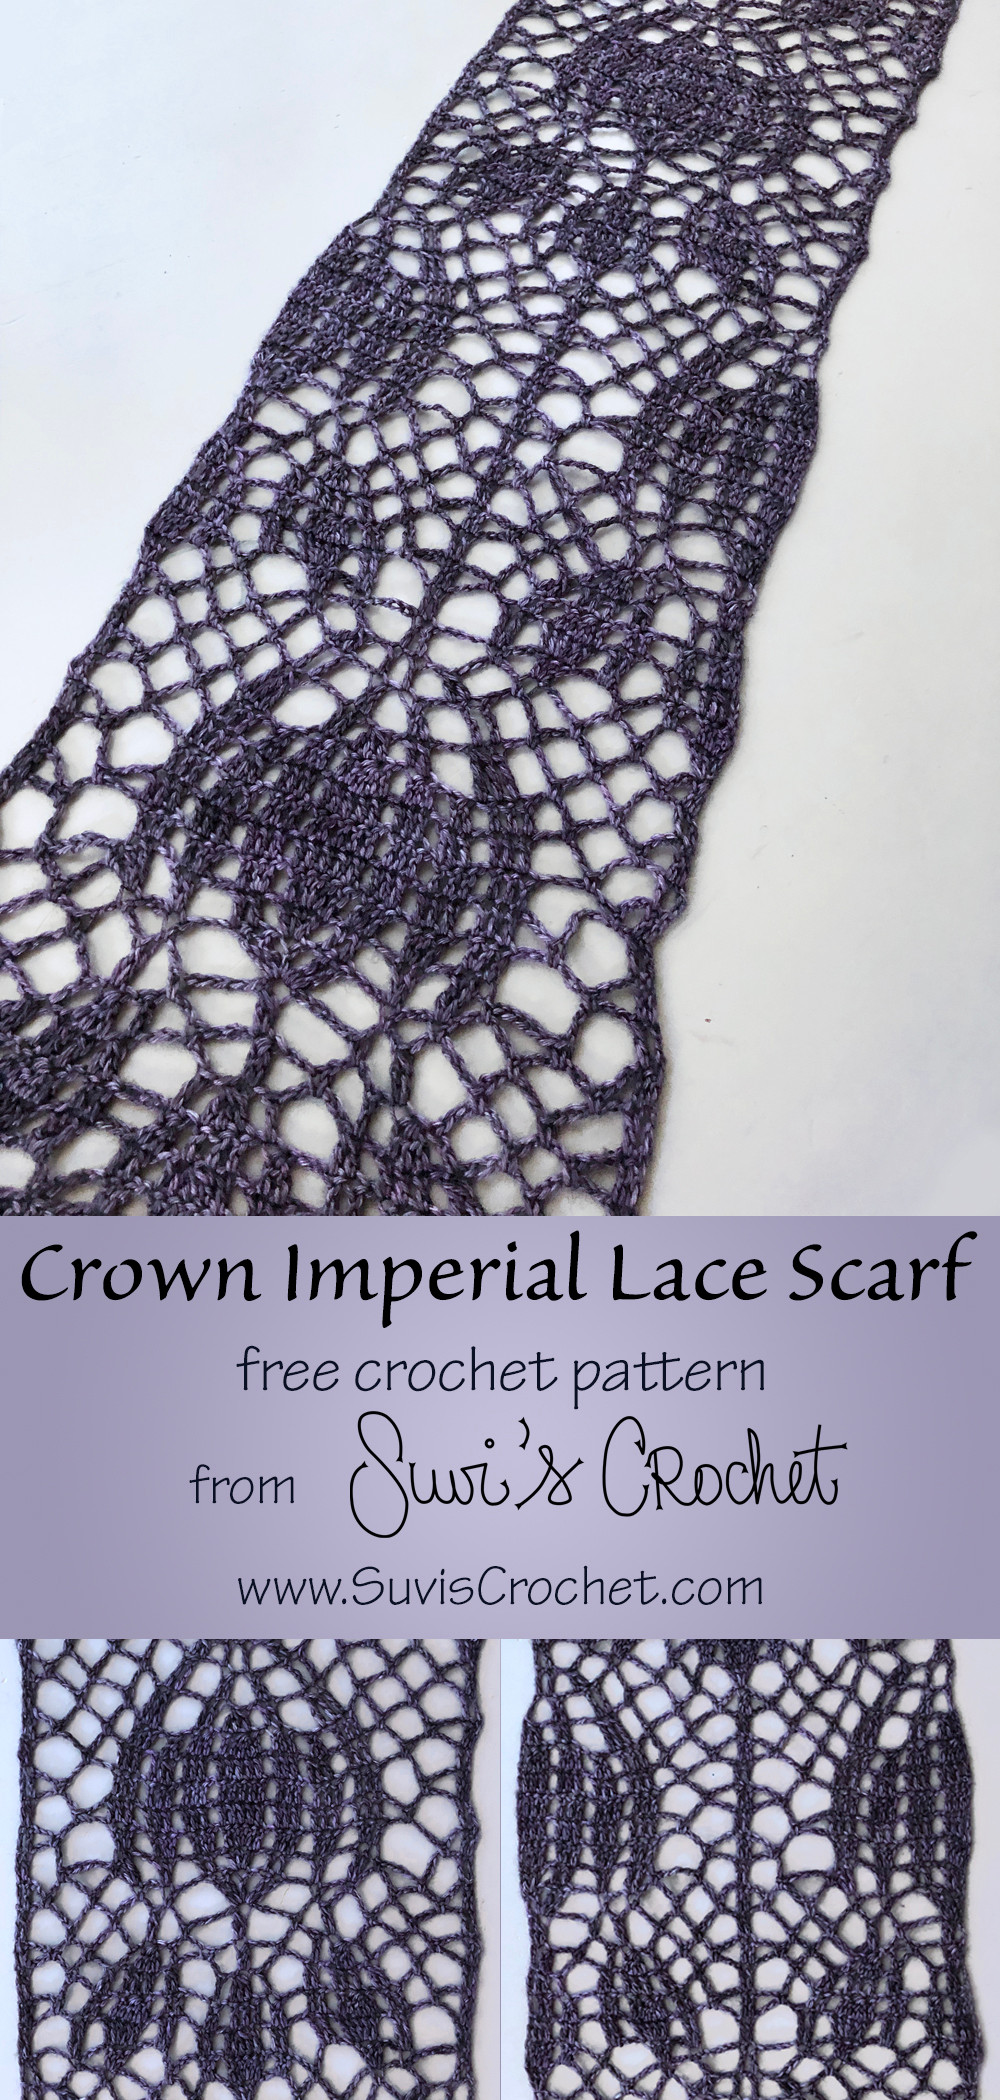 Crocheted lace scarf with a crown imperial flower motif.